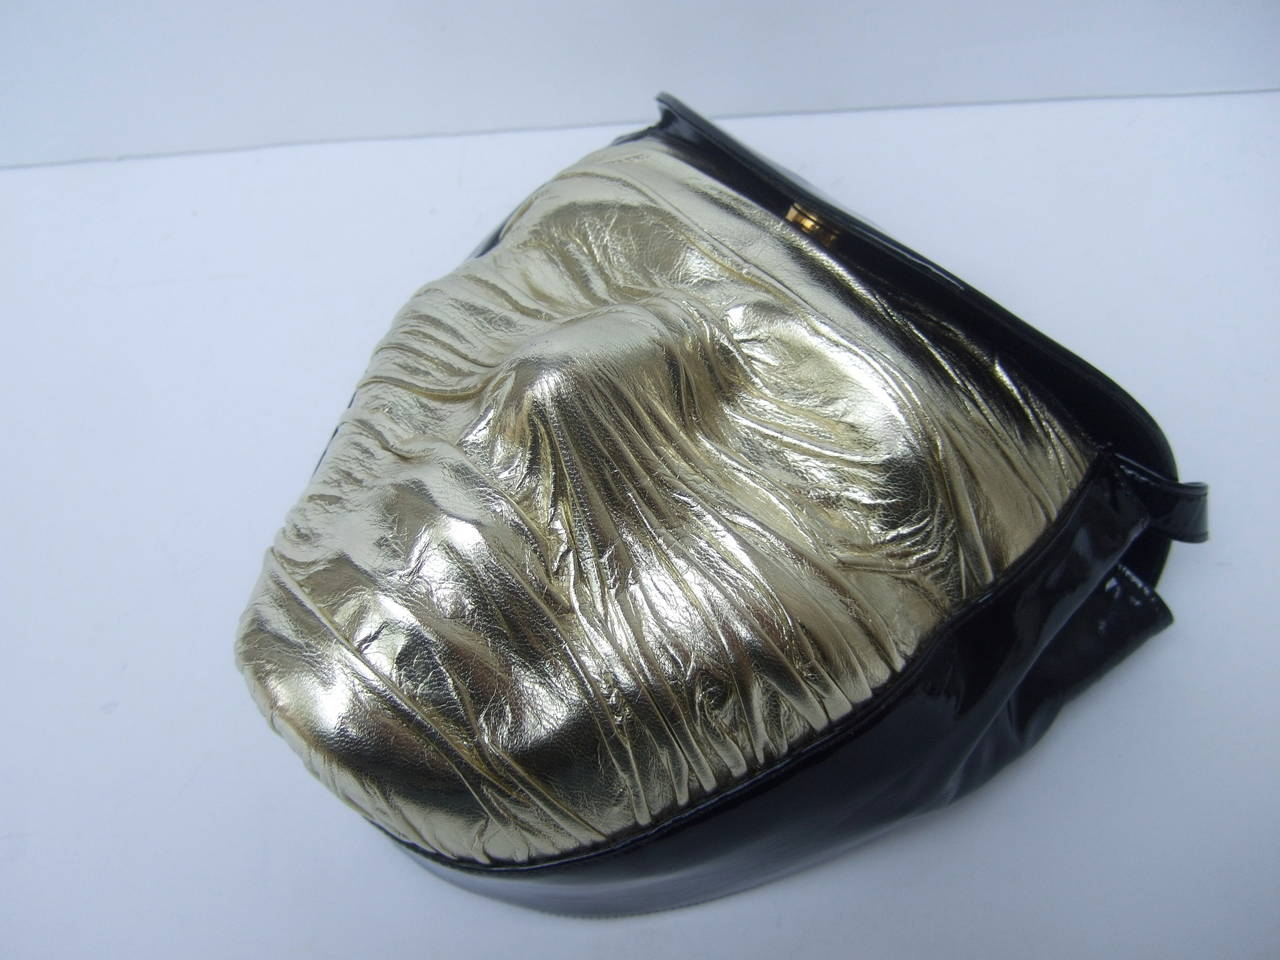 Charles Jourdan Paris Avant-Garde Mummified Handbag c 1980s For Sale 2